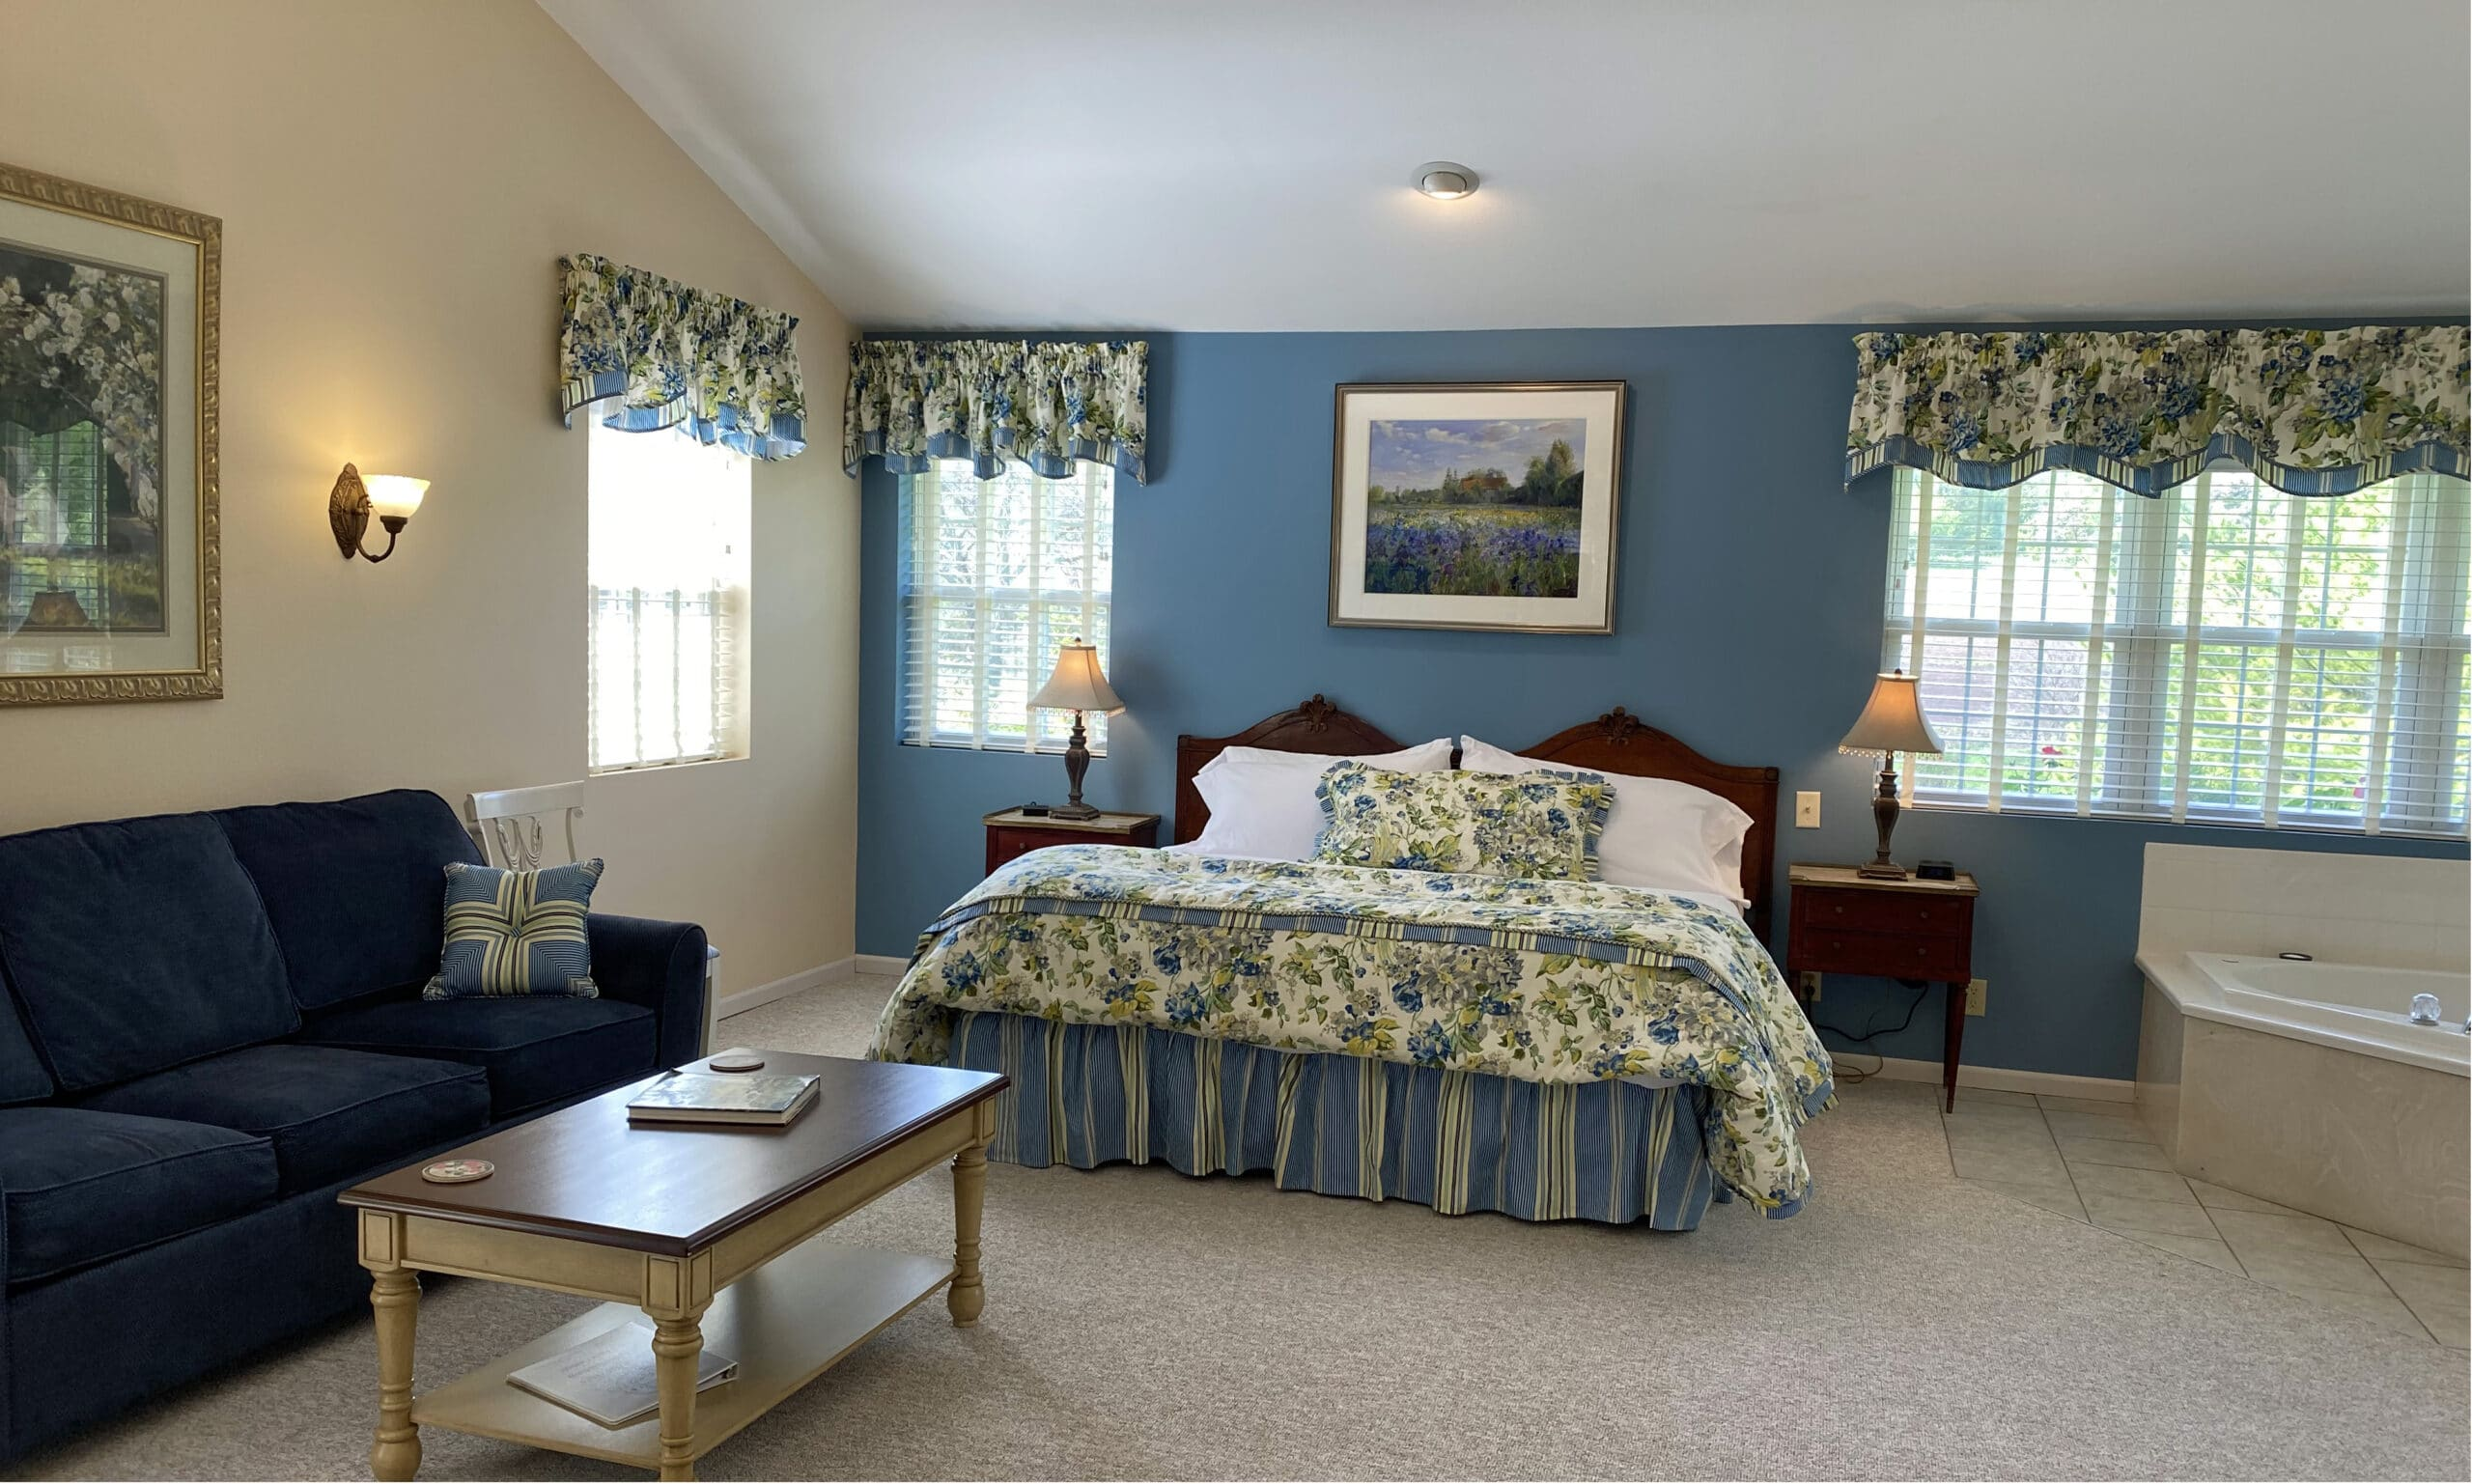 Blue Walls with large floral bed and whirlpool